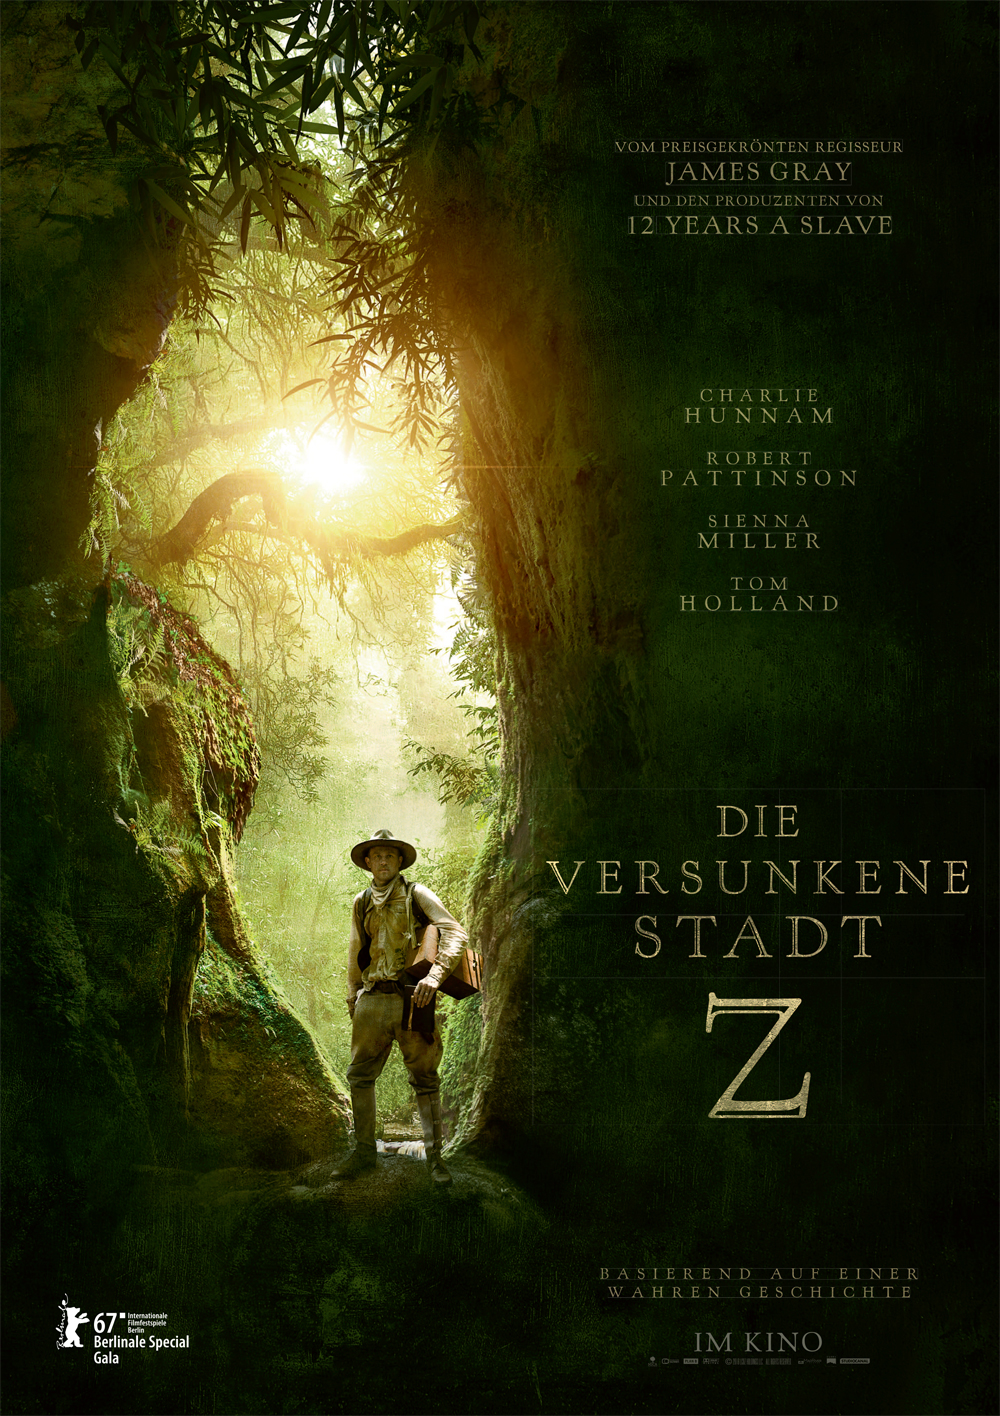 CinemaNext Equips 25 Screens in Germany with EclairColor HDR Technology for 30 March Release of James Gray's The Lost City of Z